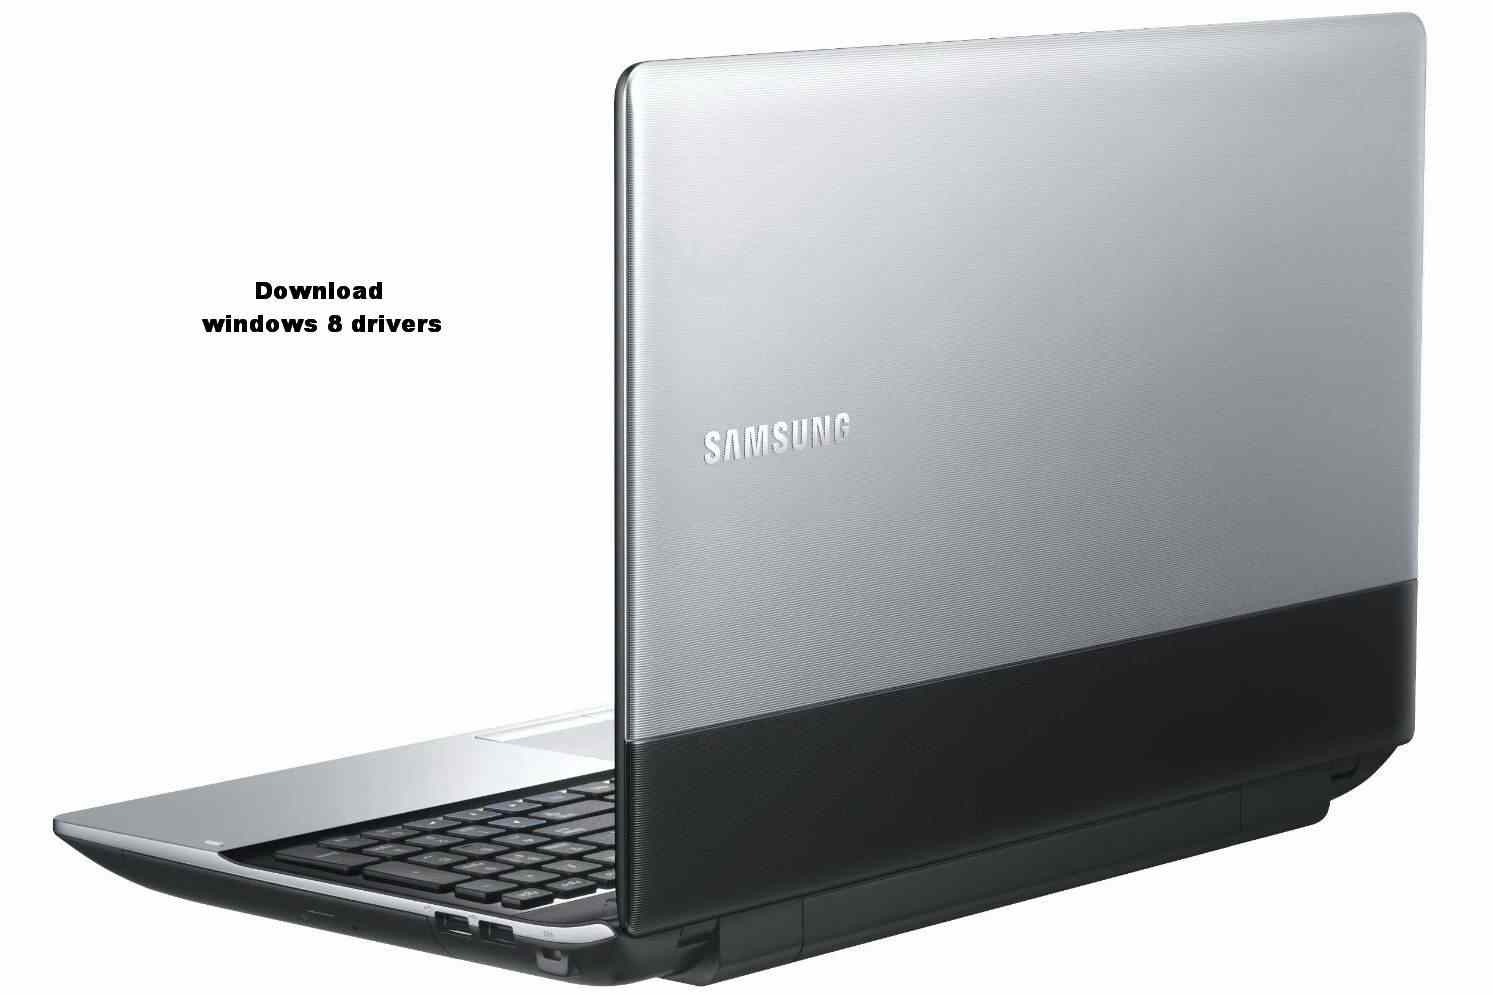 Notebook samsung driver